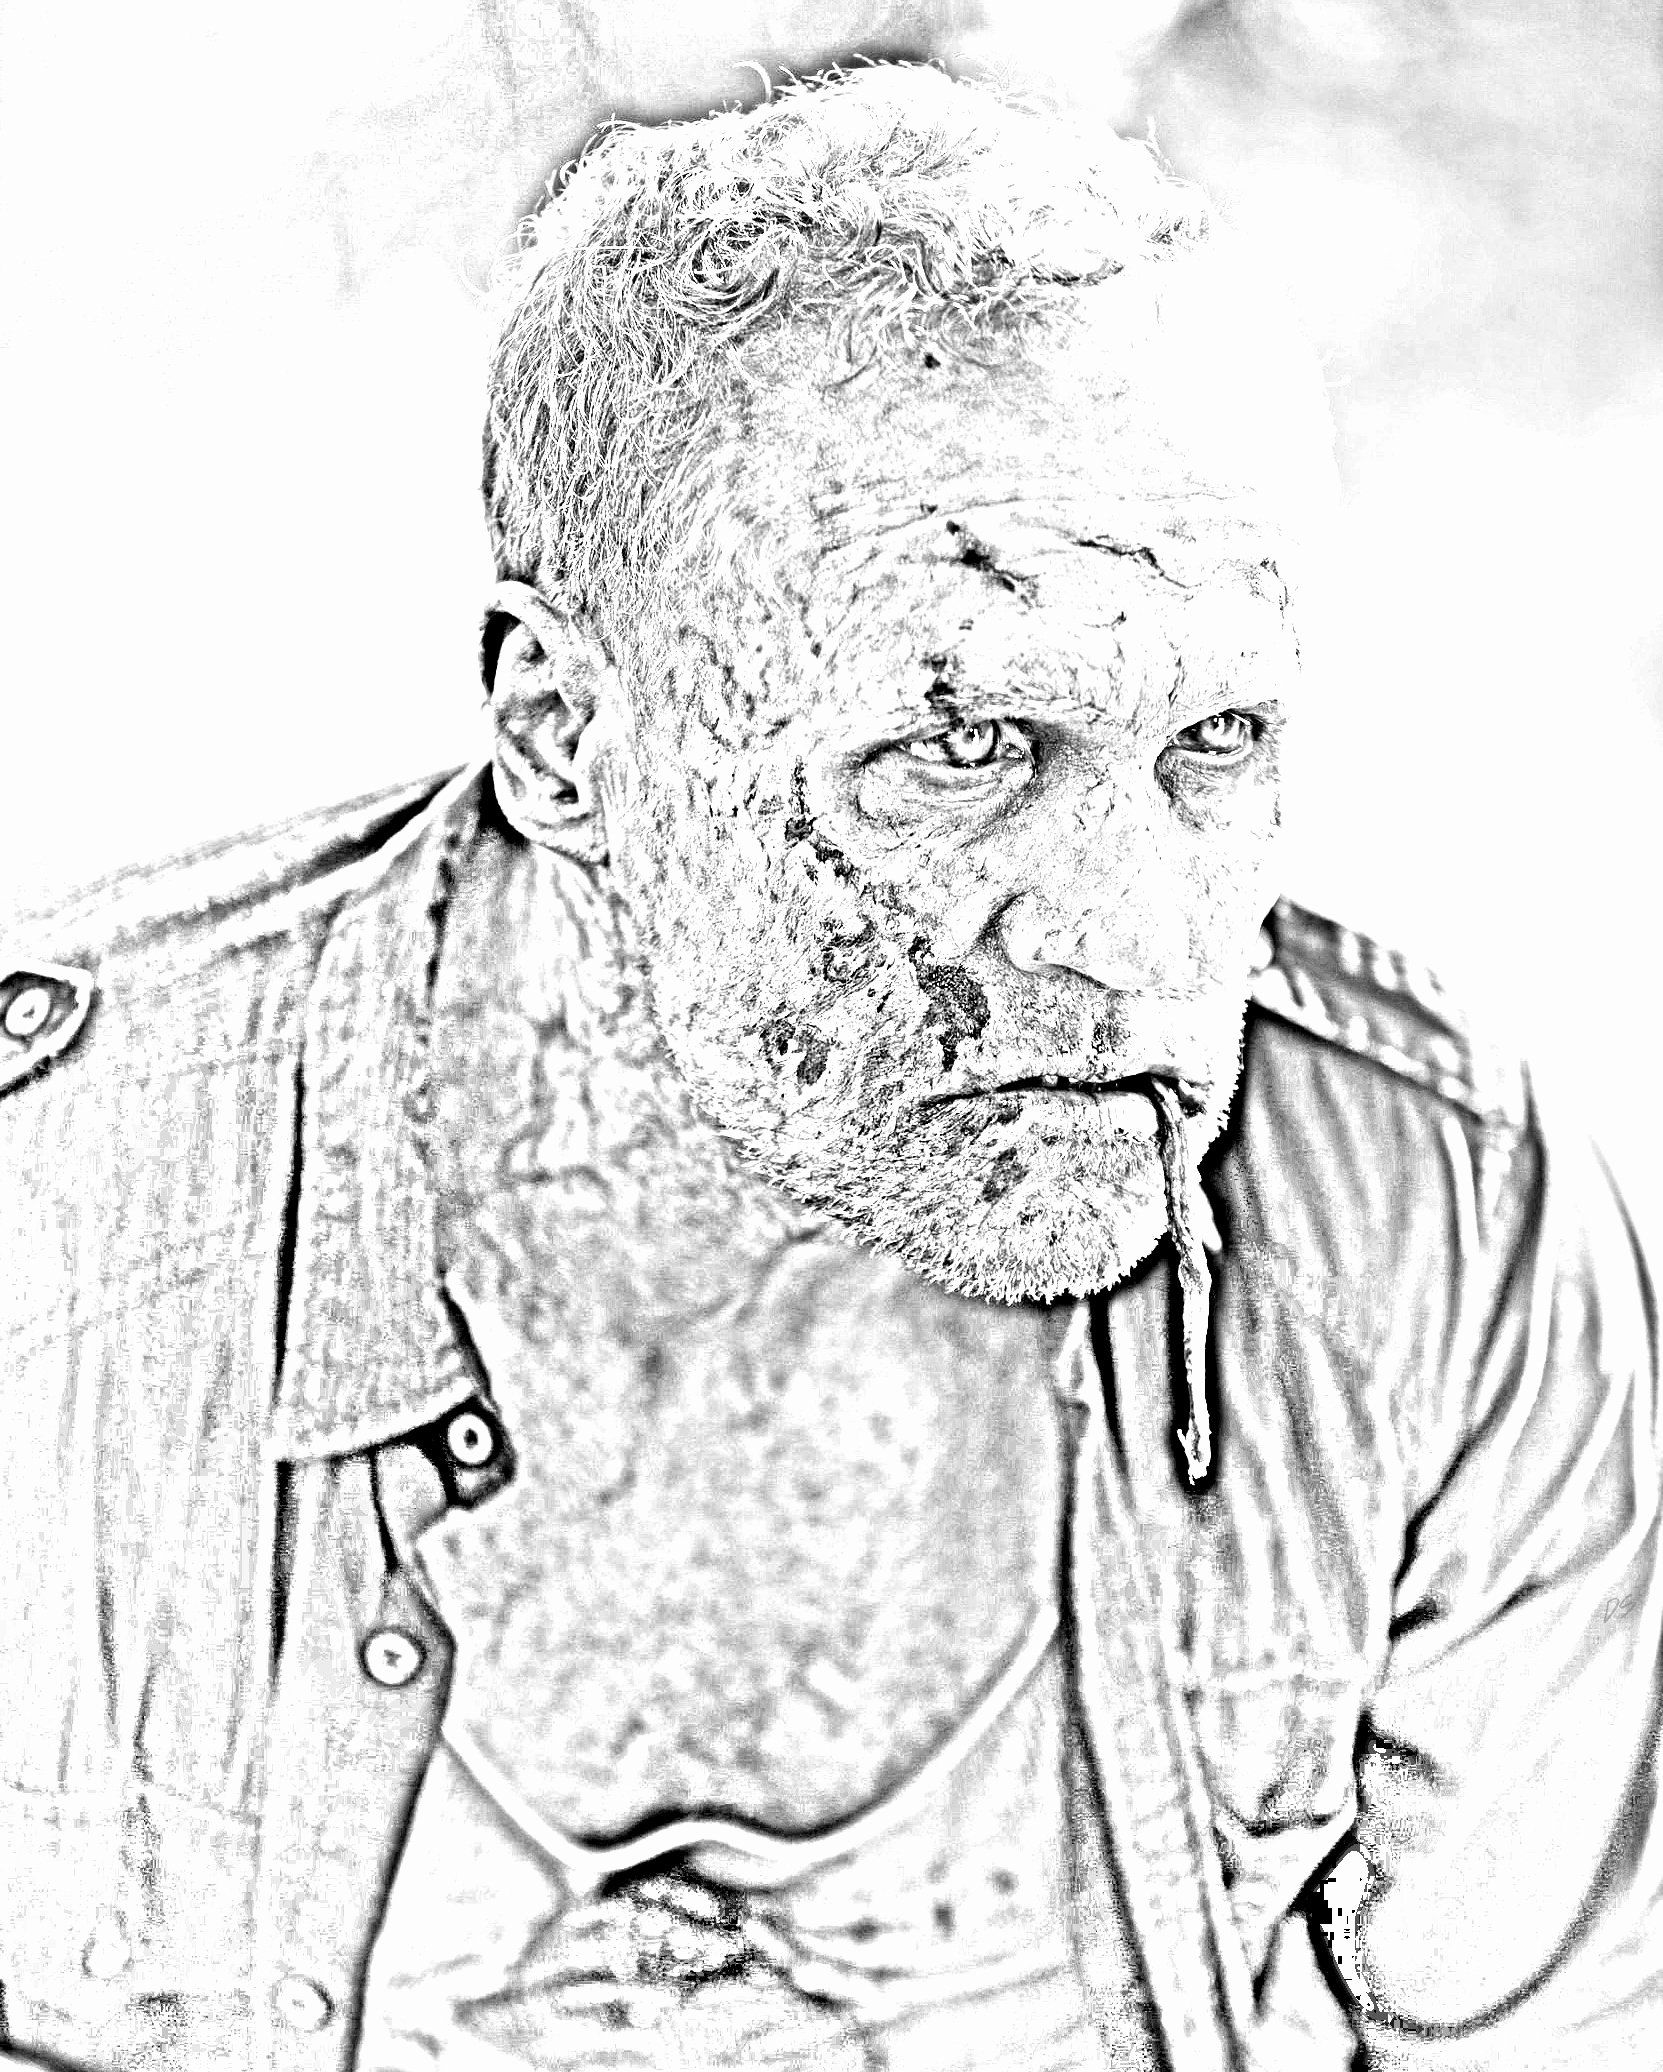 Walking Dead Coloring Book Inspirational The Walking Dead Coloring Pages Merle The Walking Coloring Books The Walking Dead Walking Dead Fan Art